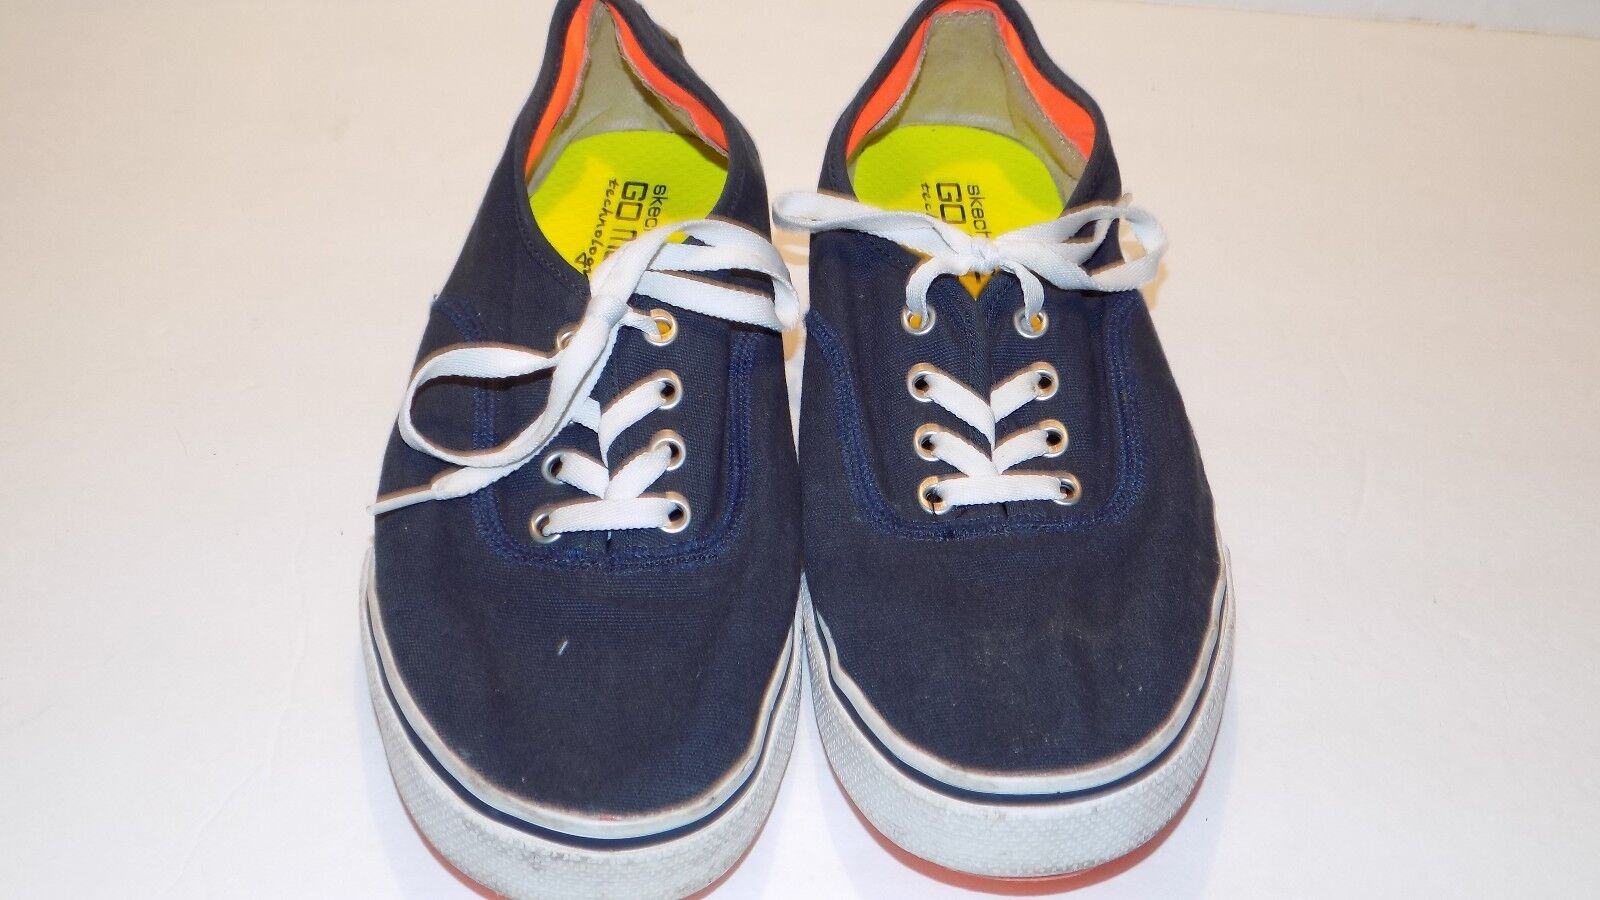 Men's Skechers On The Go 53732 Navy Blue Canvas Sneakers US Comfortable New shoes for men and women, limited time discount